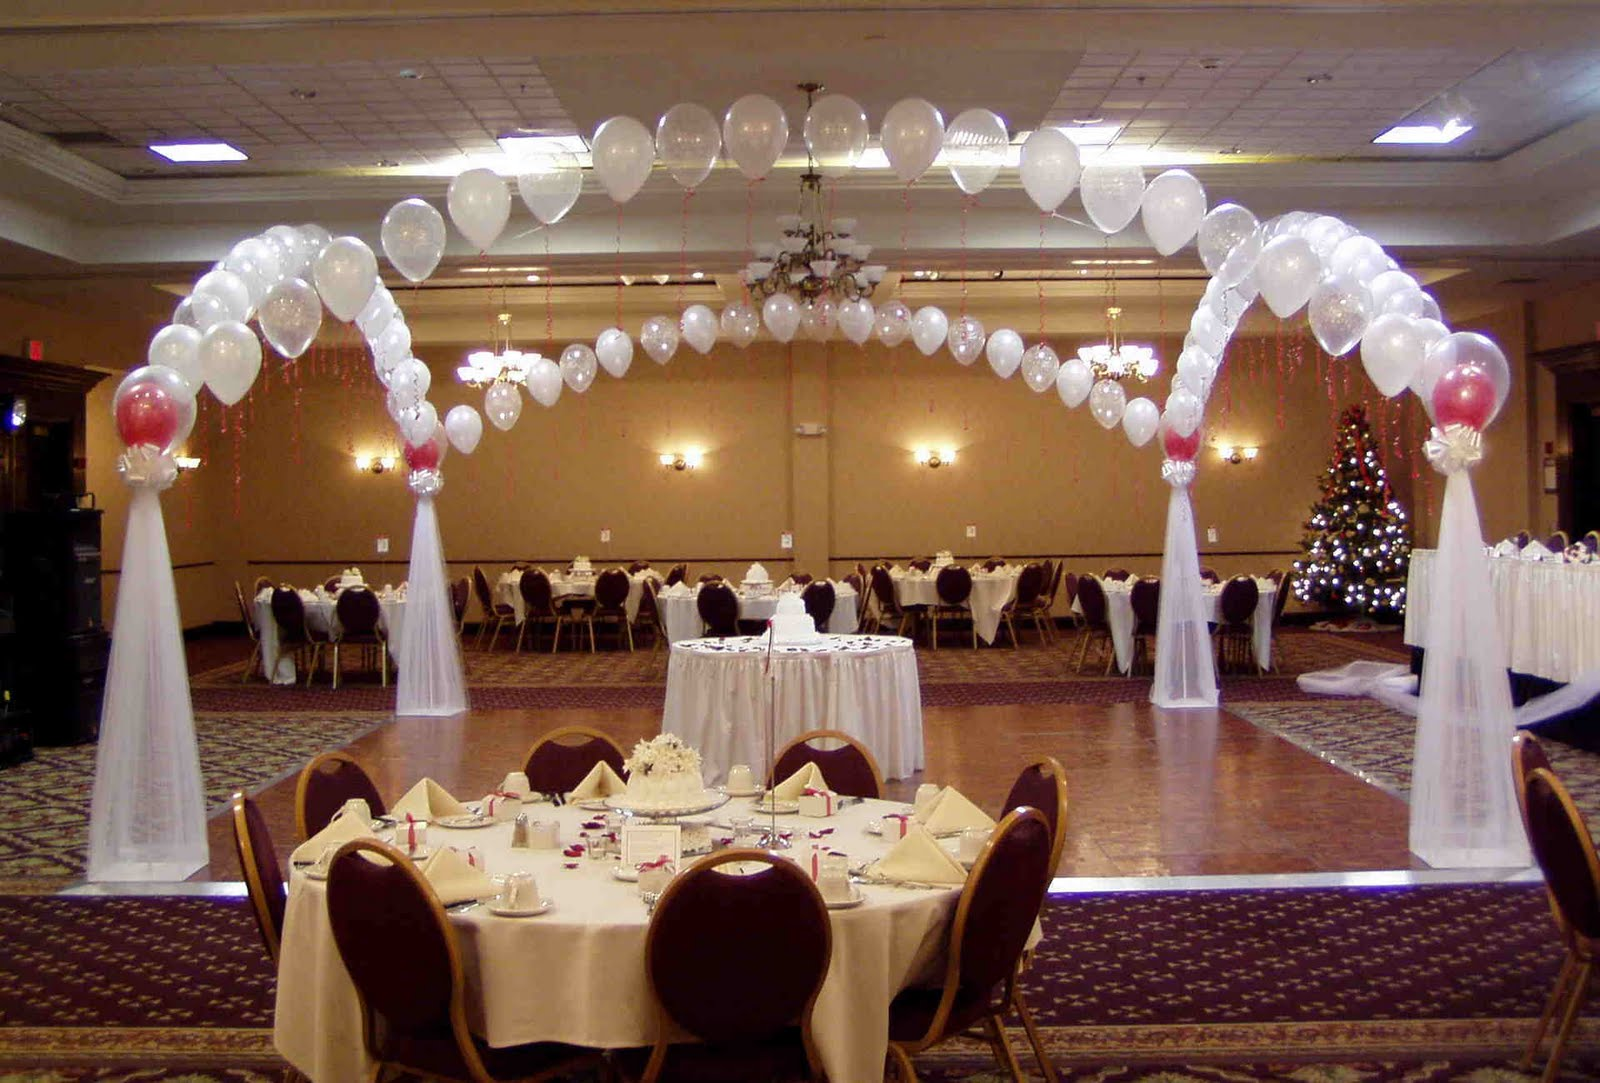 Wedding Reception Balloon Decoration Ideas